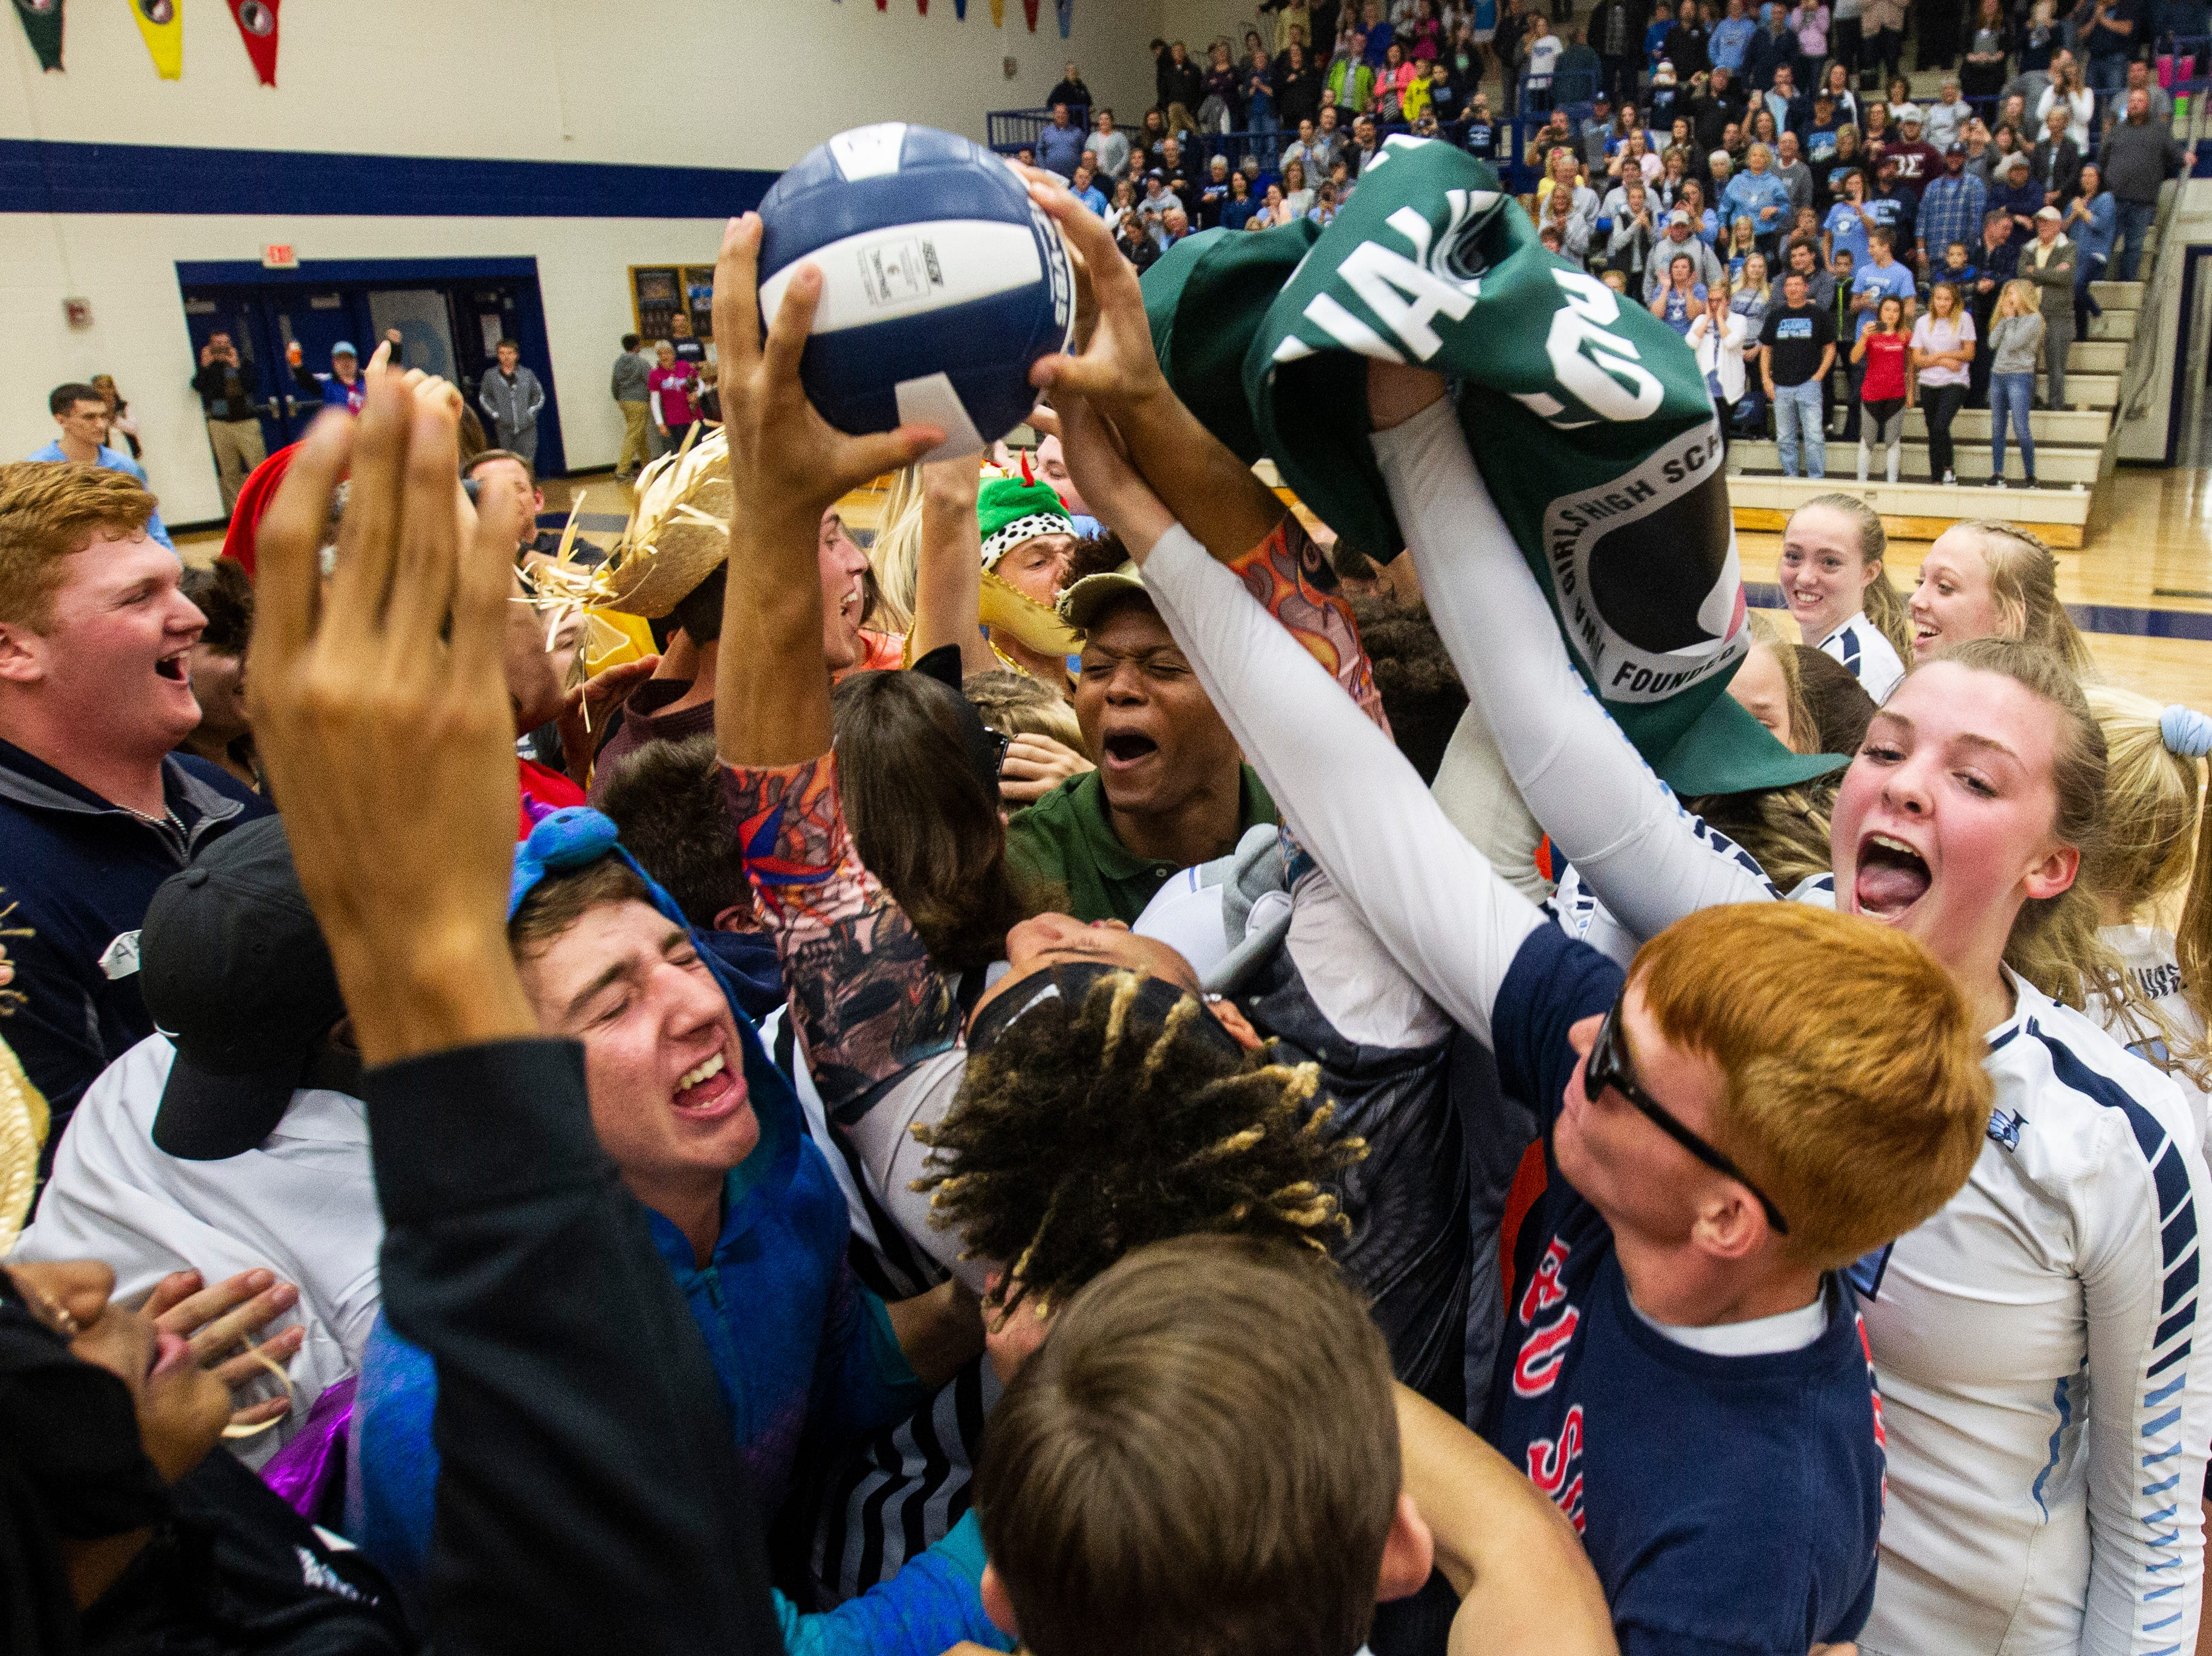 Cedar Rapids Jefferson players and fans celebrate after a regional final volleyball game Monday, Oct. 29, 2018, at Jefferson High School in Cedar Rapids.